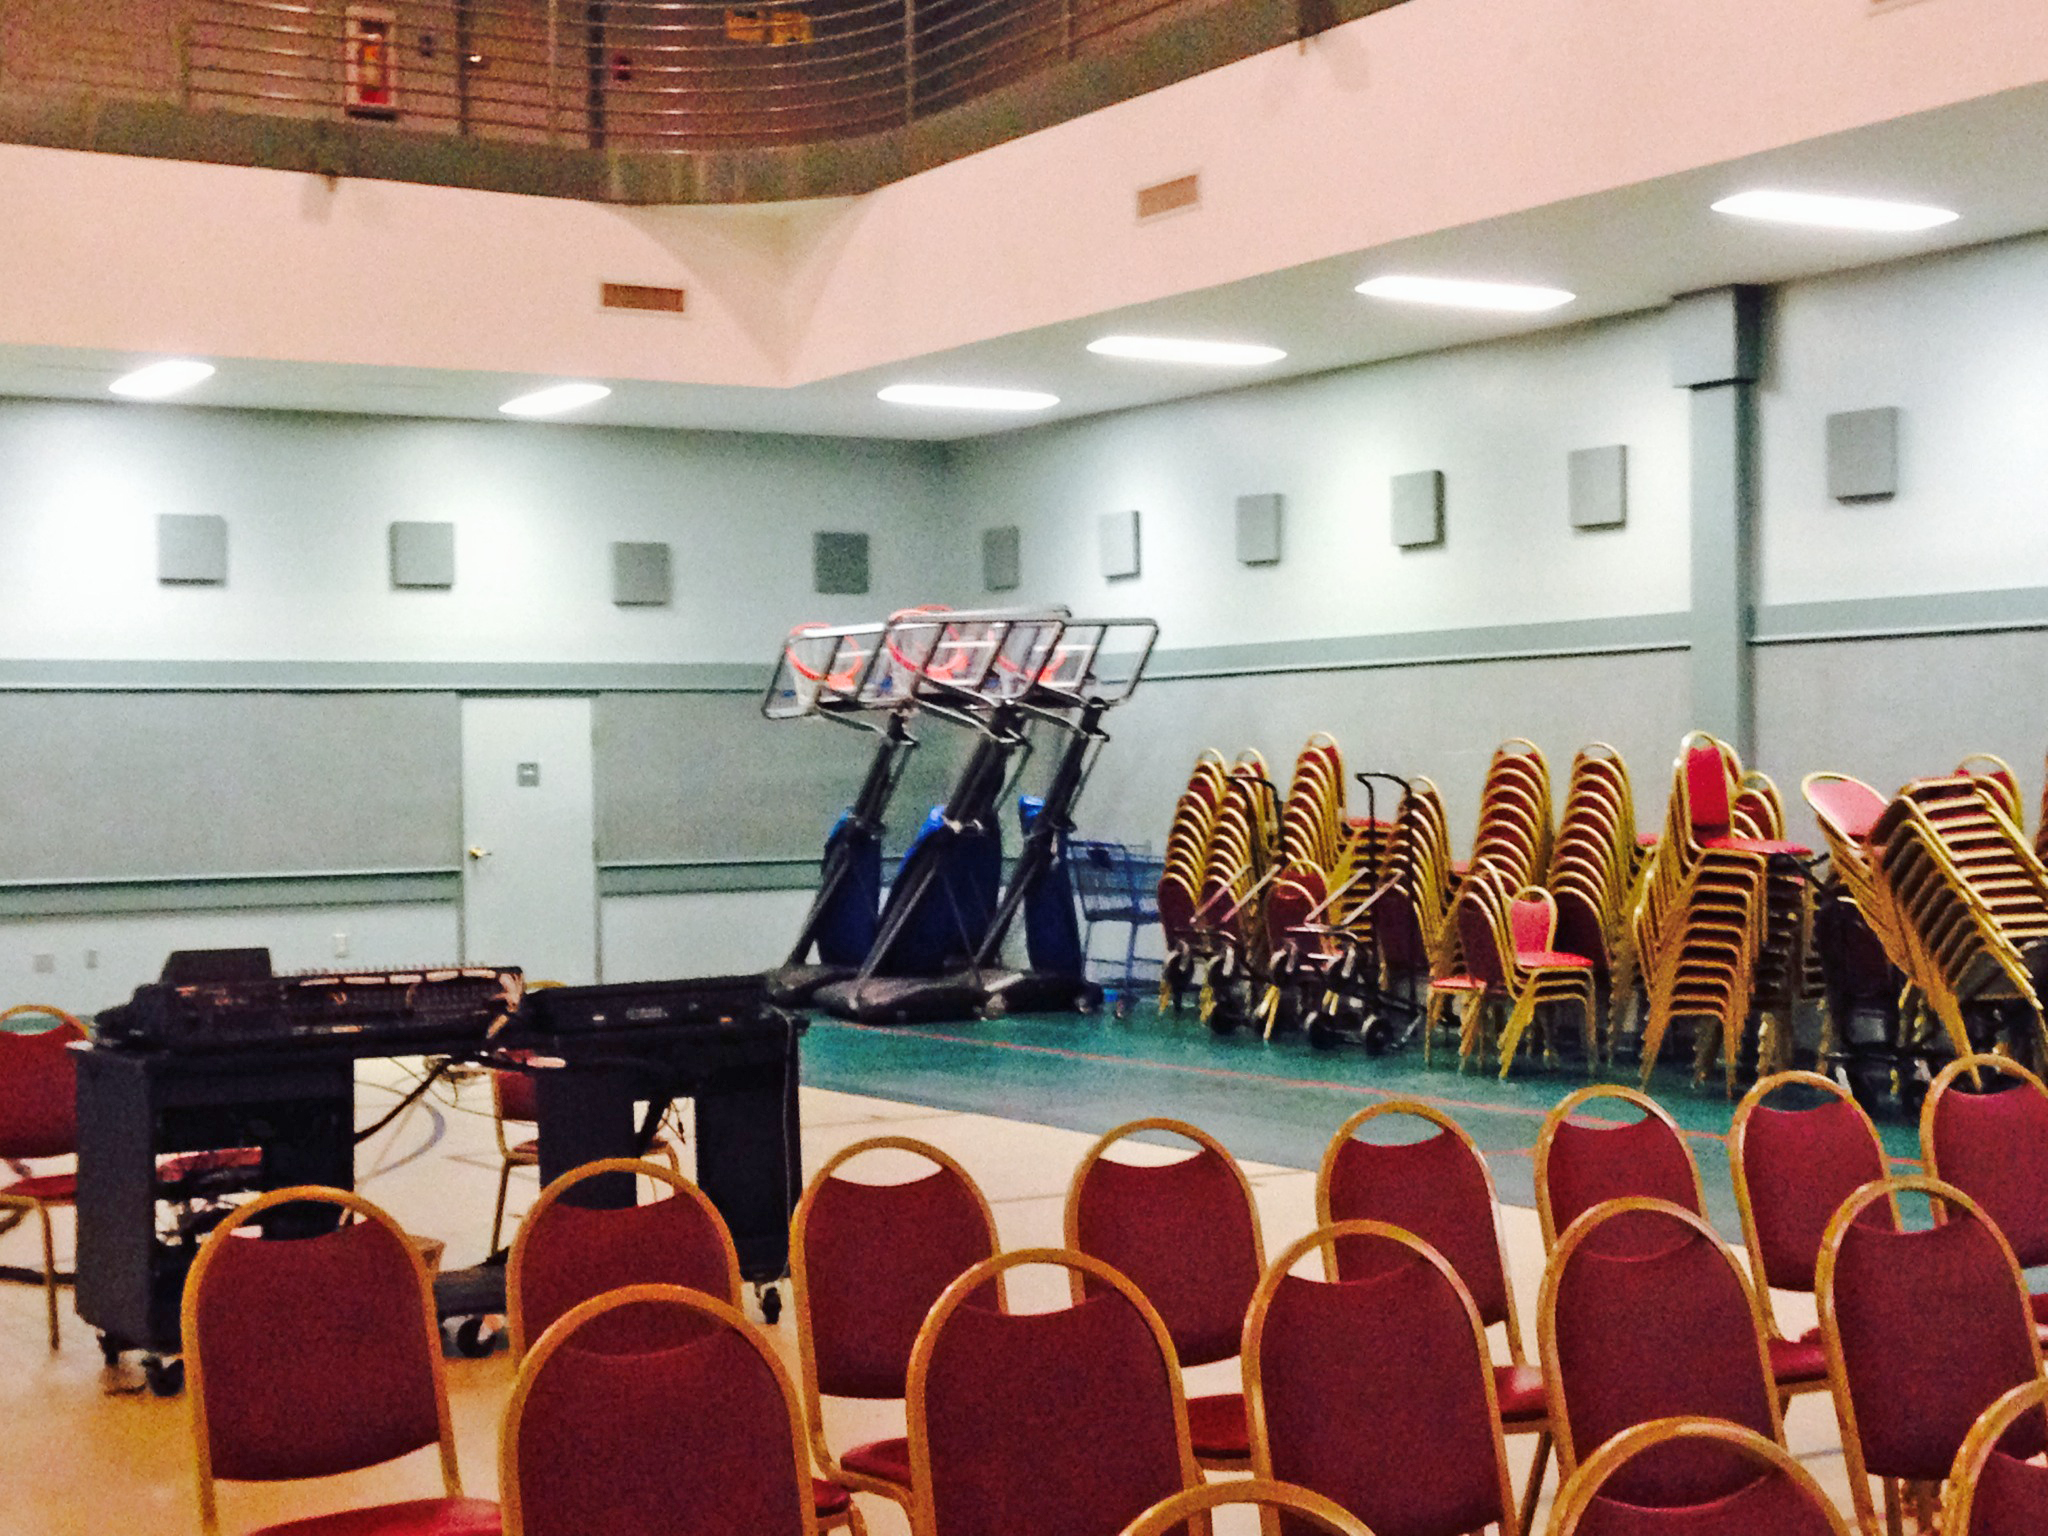 Rows of chair are set up to create a church sanctuary inside a gym. Additional chairs and basketball hoops are set out of the way against the wall.